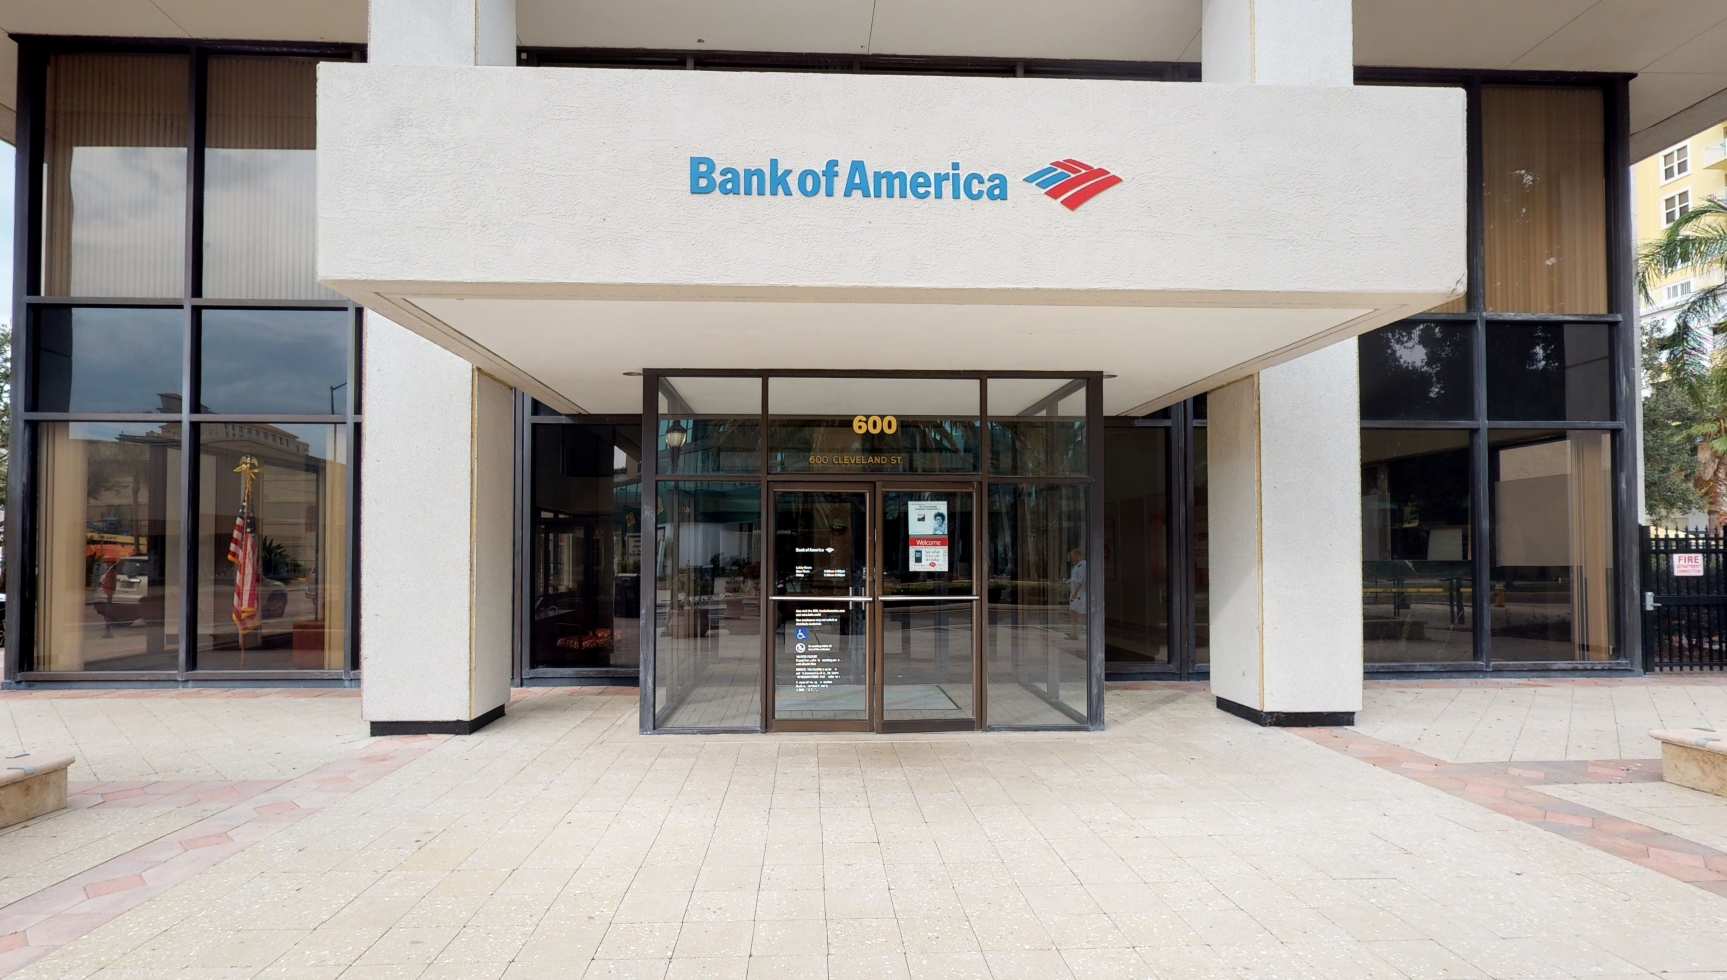 Bank of America financial center with walk-up ATM   600 Cleveland St, Clearwater, FL 33755